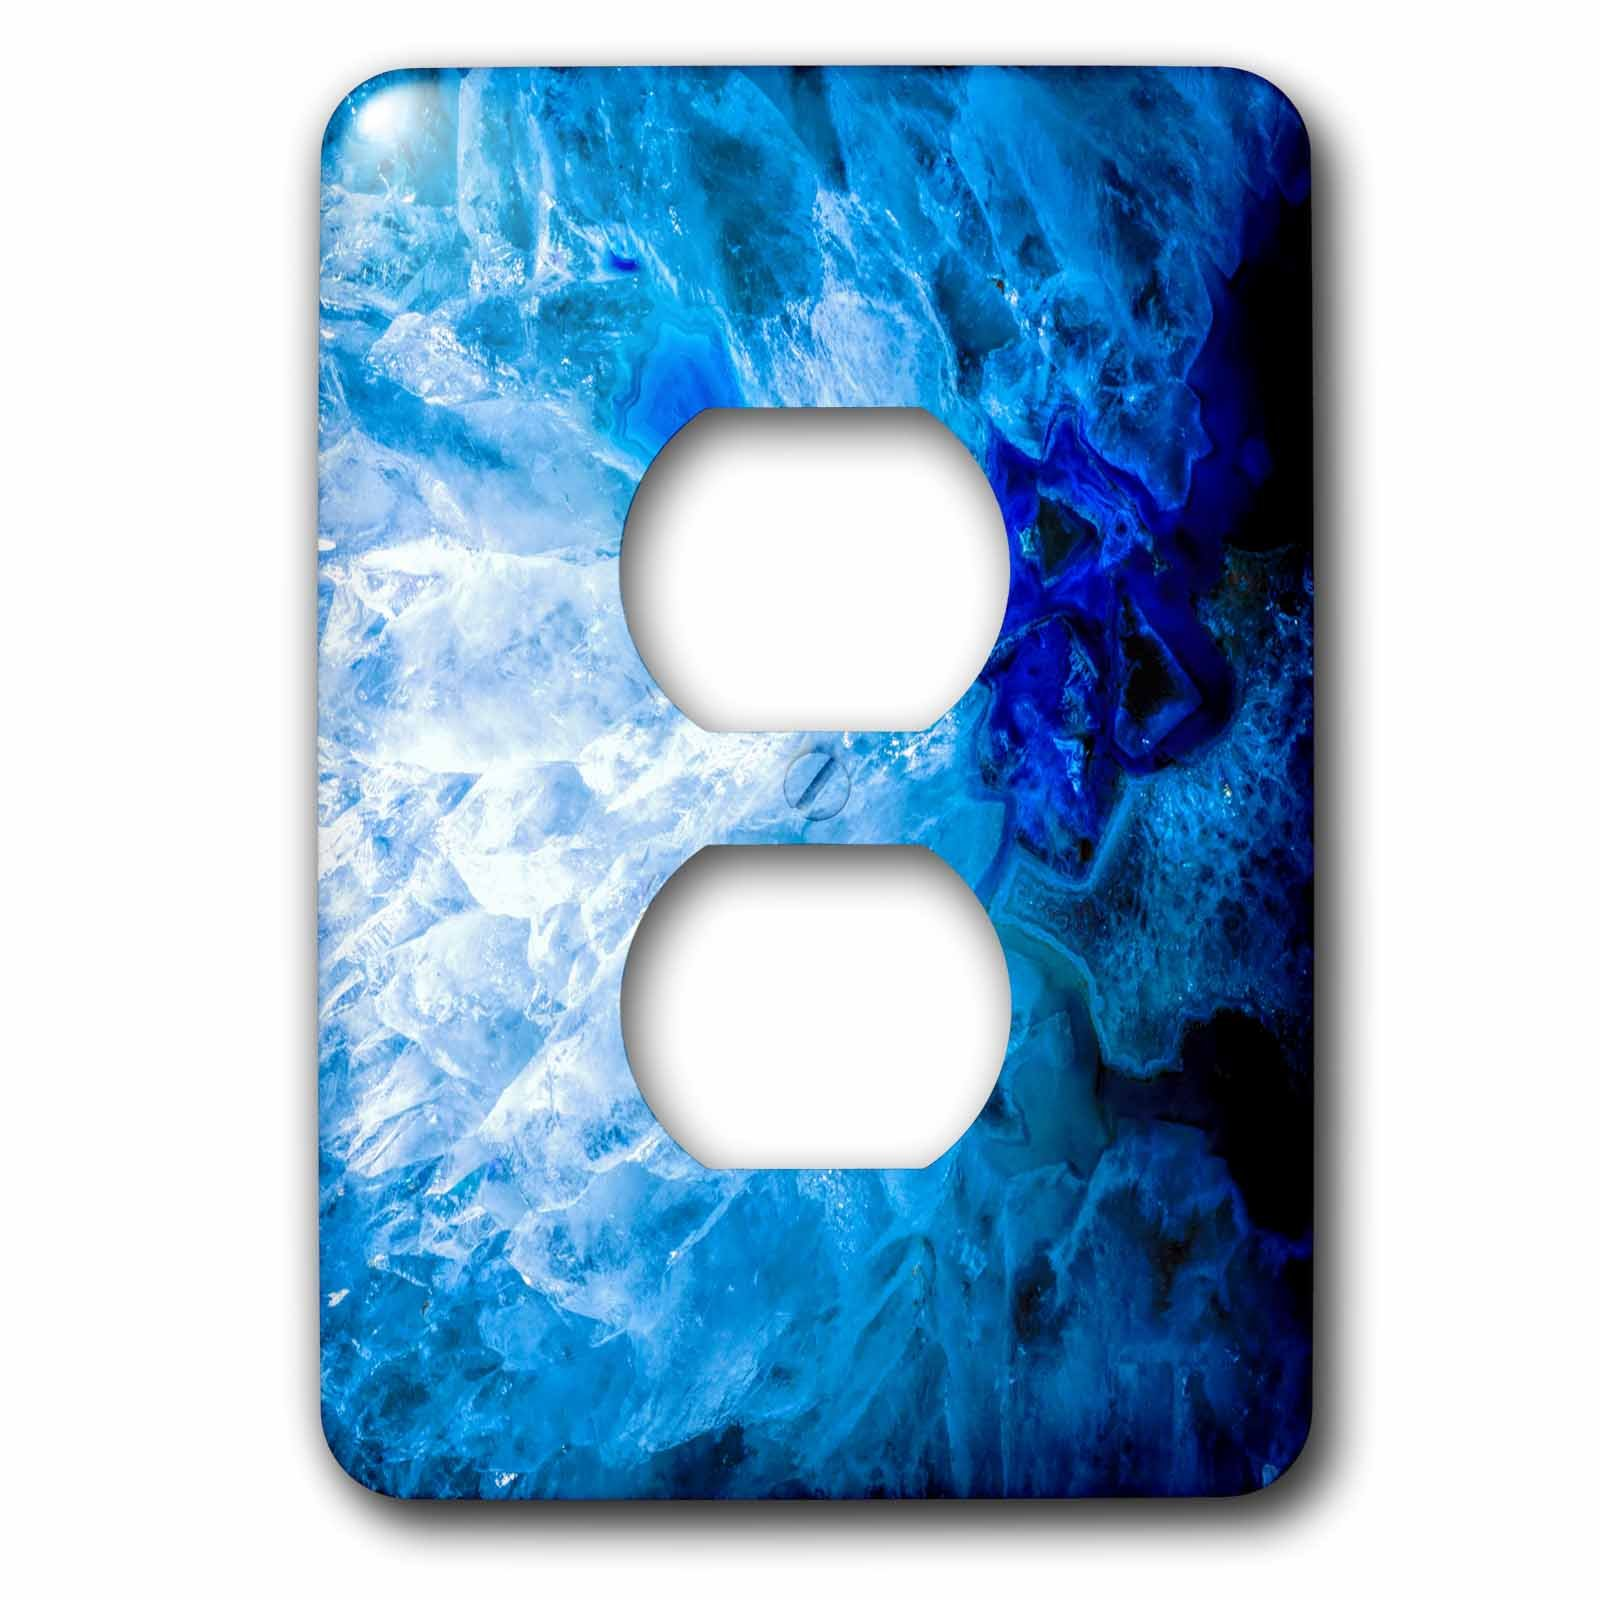 3dRose Uta Naumann Faux Glitter Pattern - Image of Luxury Fashion Ice Blue Marble Agate Gem Mineral Quartz - Light Switch Covers - 2 plug outlet cover (lsp_275050_6)